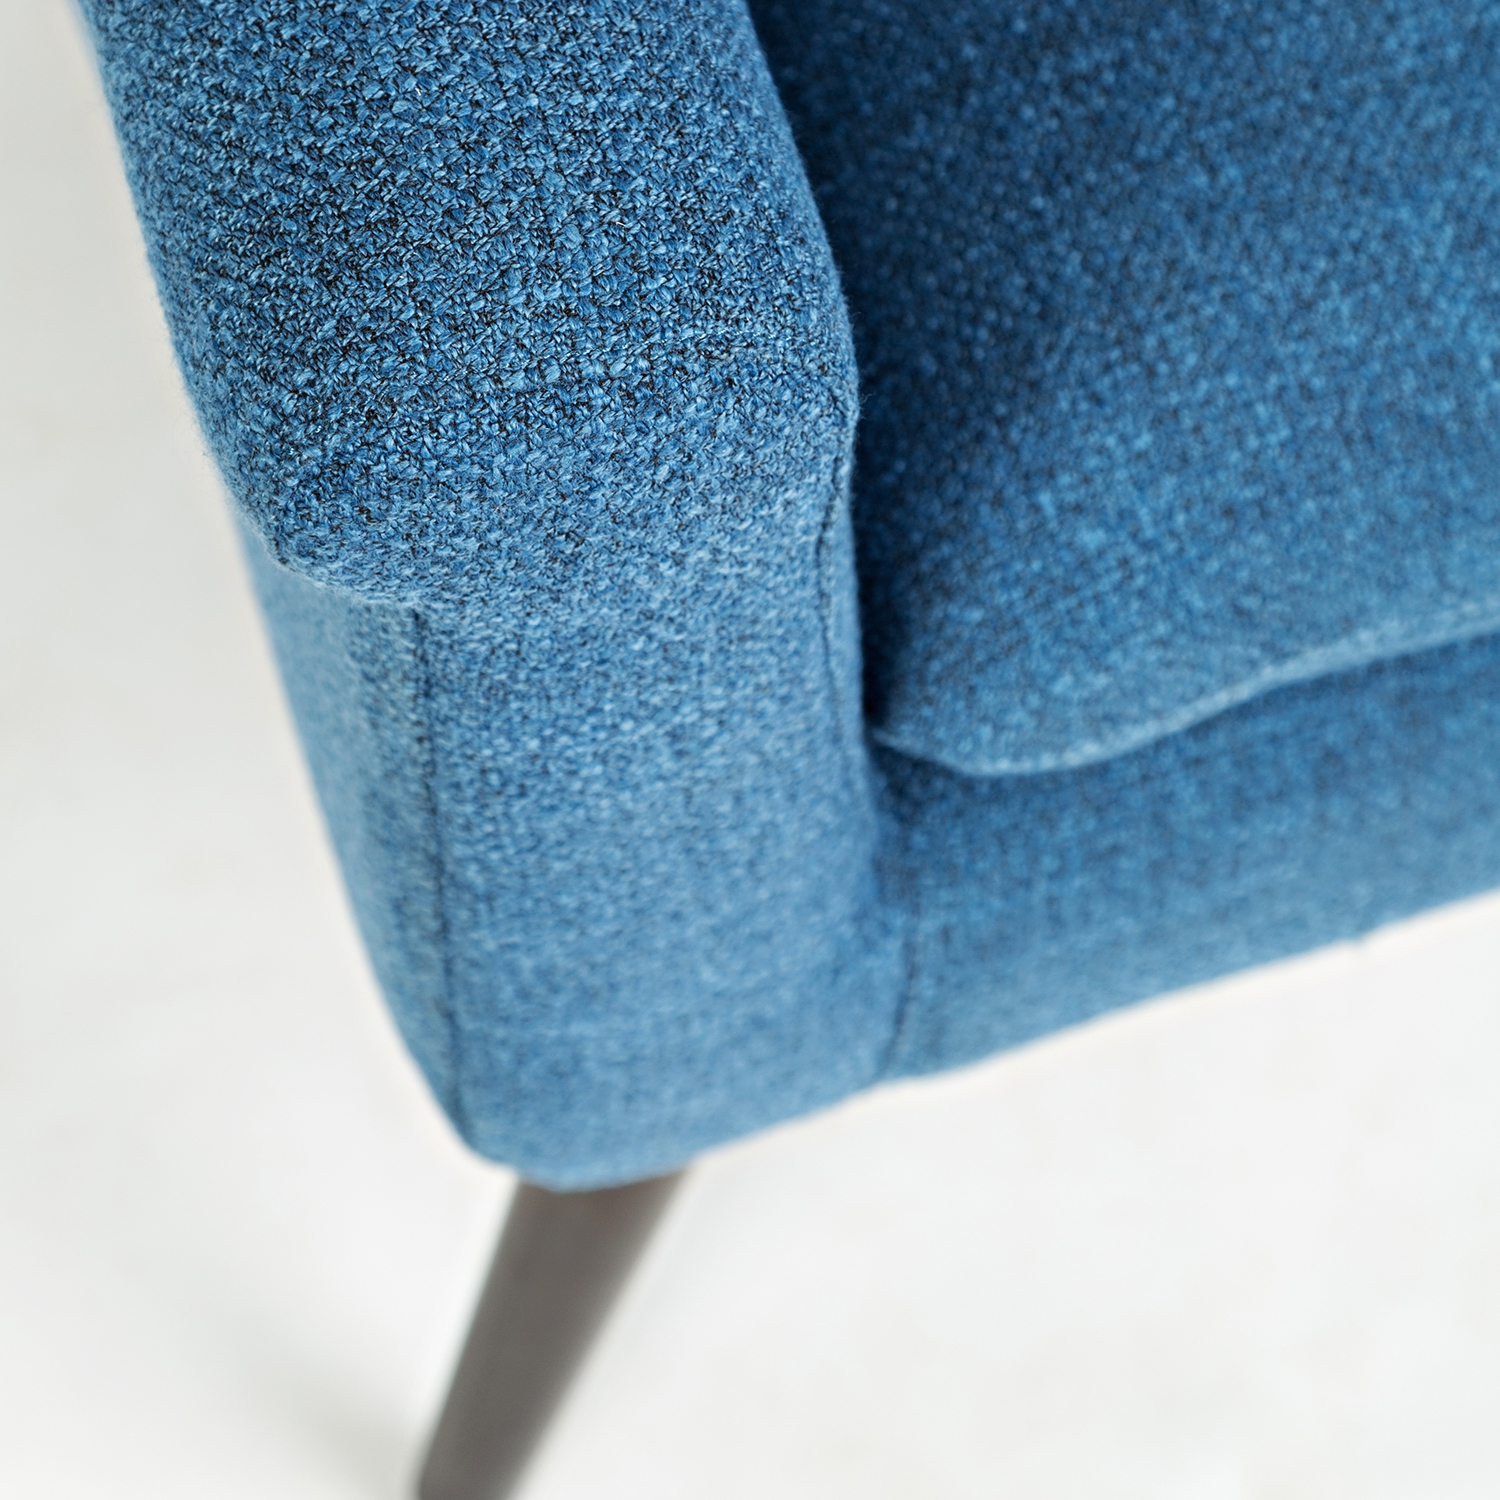 Royal blue accent chair - Marconi Mod Accent Chair In Royal Blue Fabric On Dark Legs